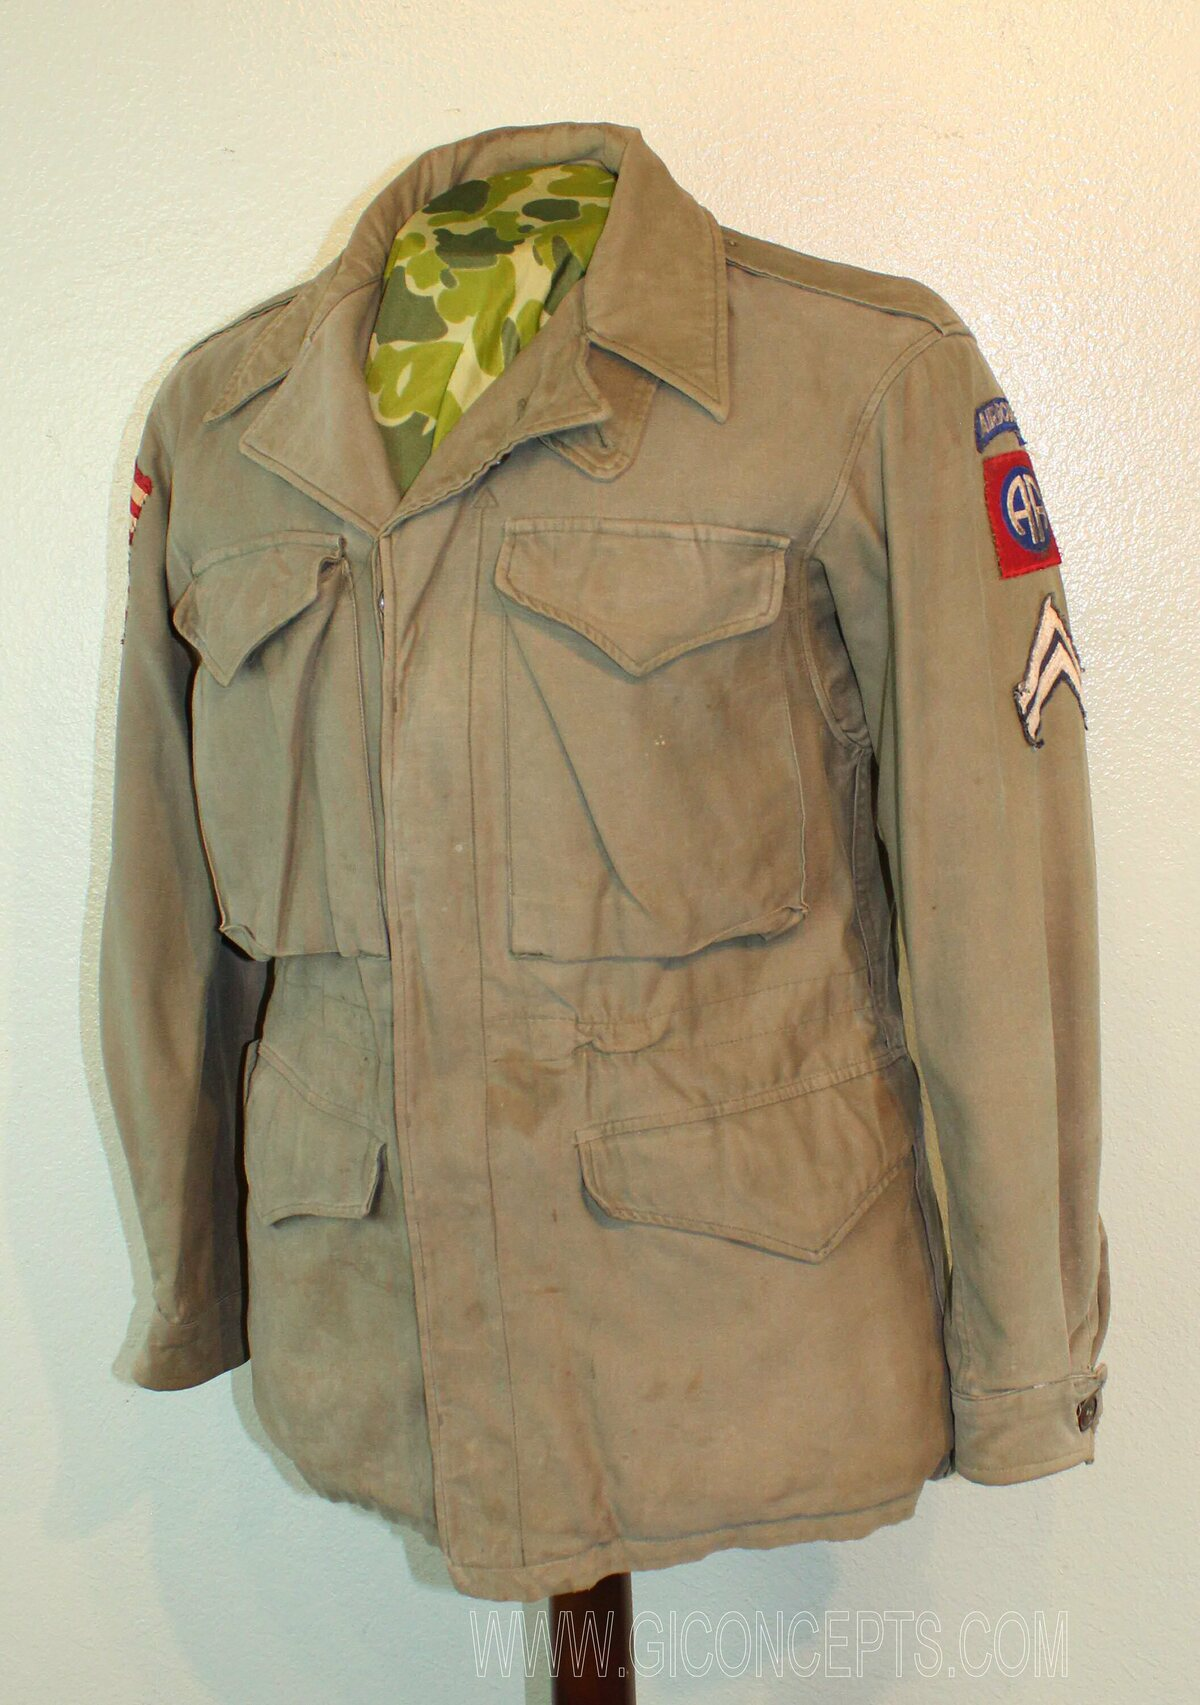 82nd Airborne M43 Jacket